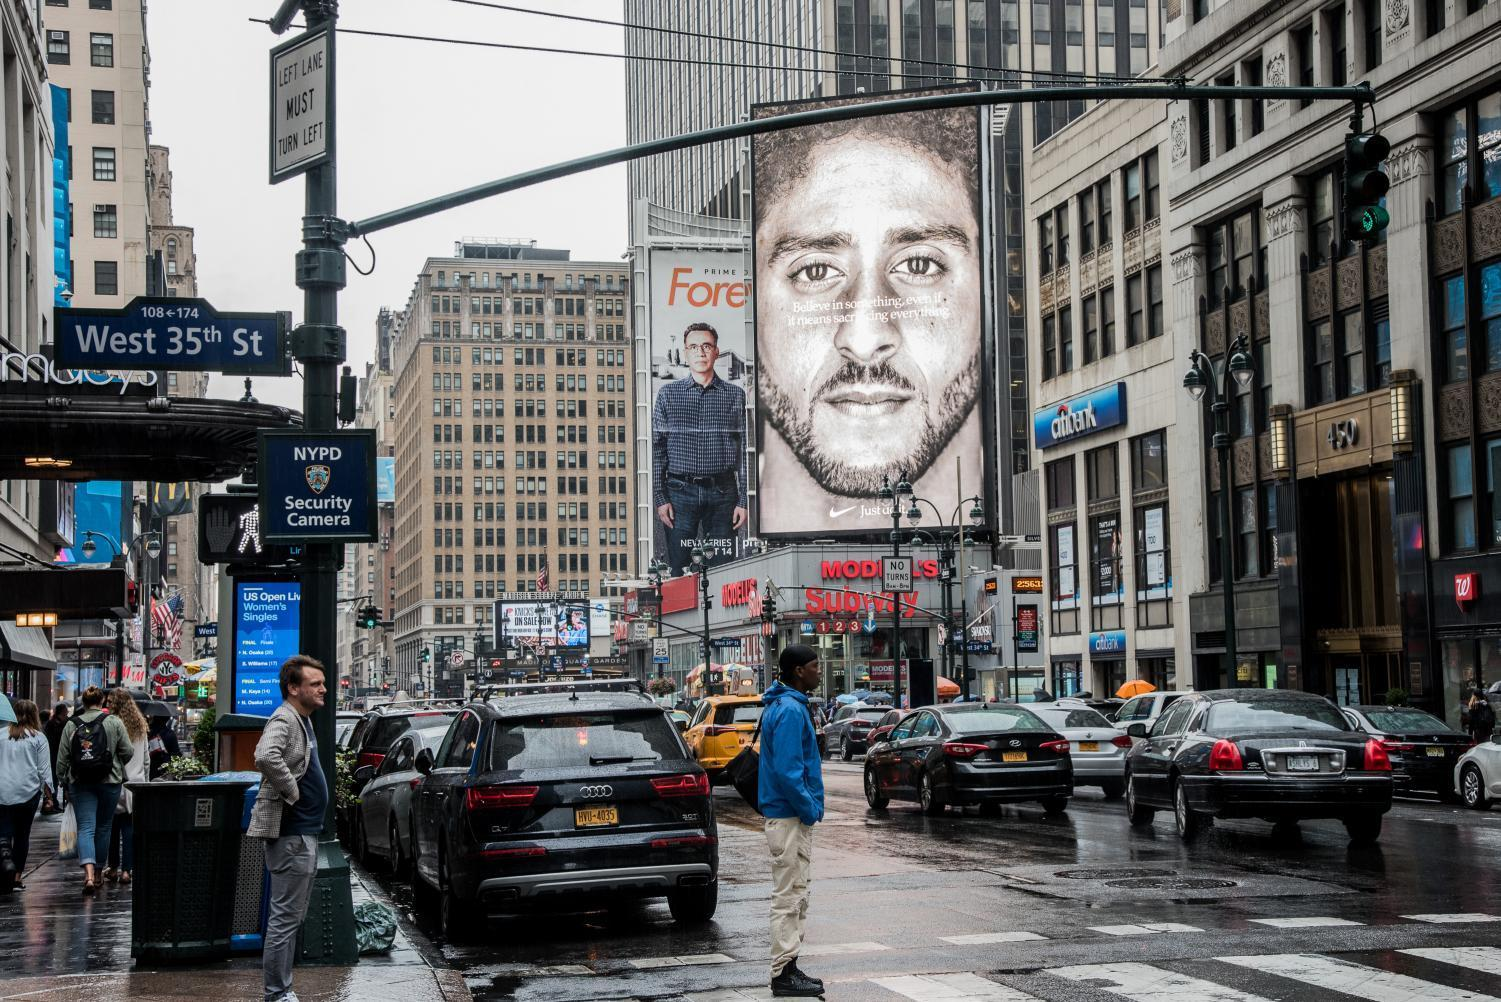 Nike recently unveiled a new series of advertisements, including this billboard of Colin Kaepernick by Madison Square Garden. The text over the image of Kaepernick, the NFL quarterback who started protesting police brutality in 2016, reads